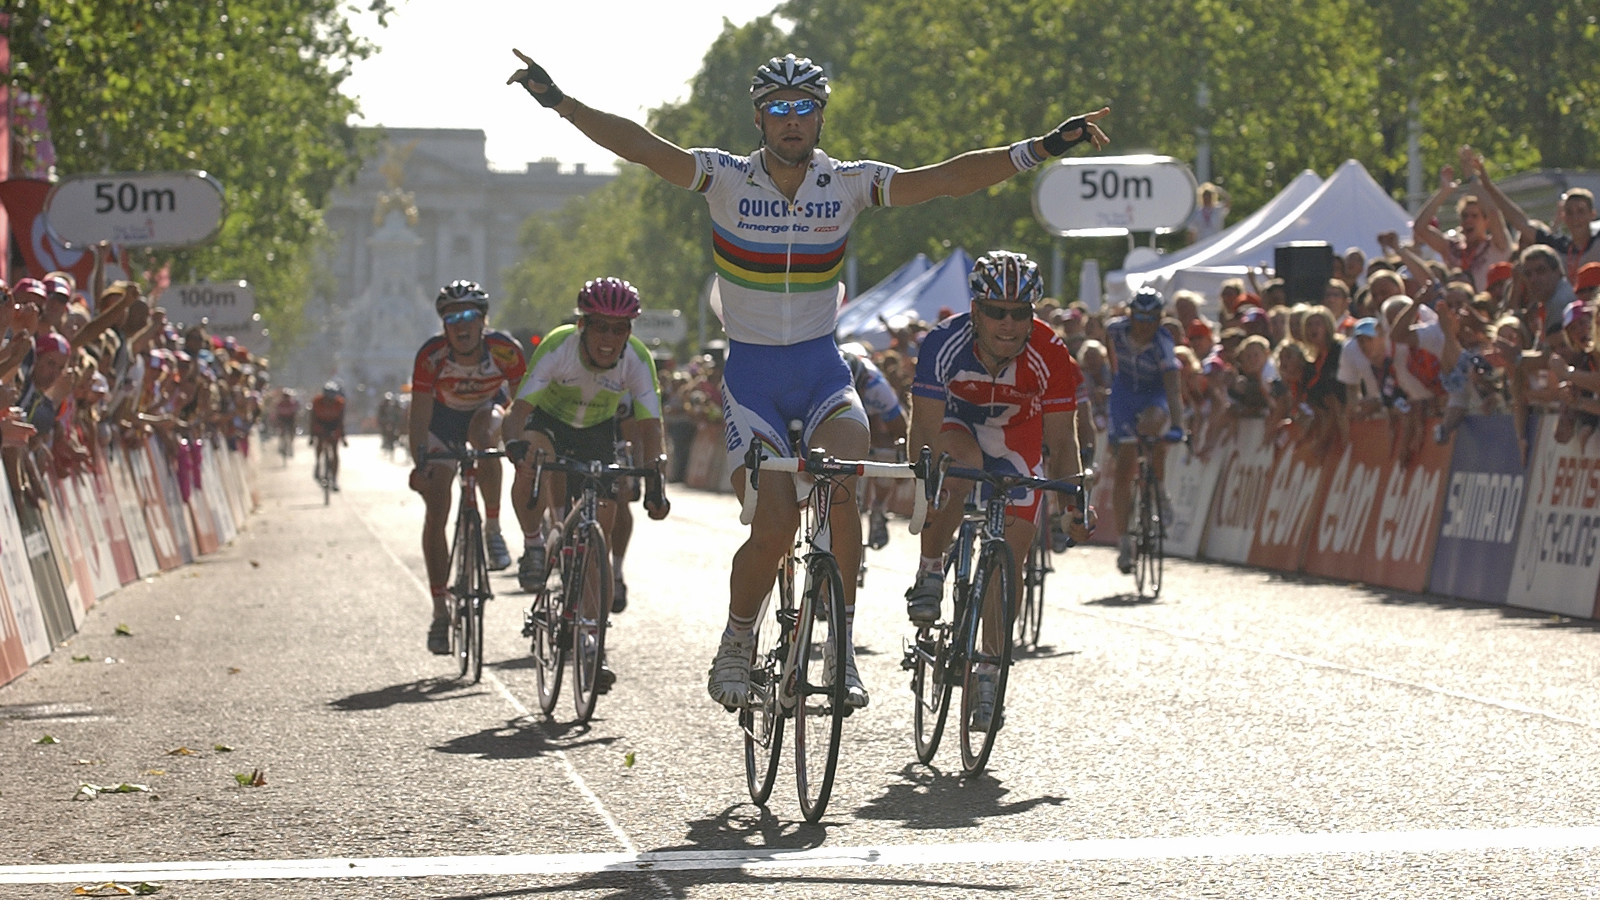 2006 Tour of Britain